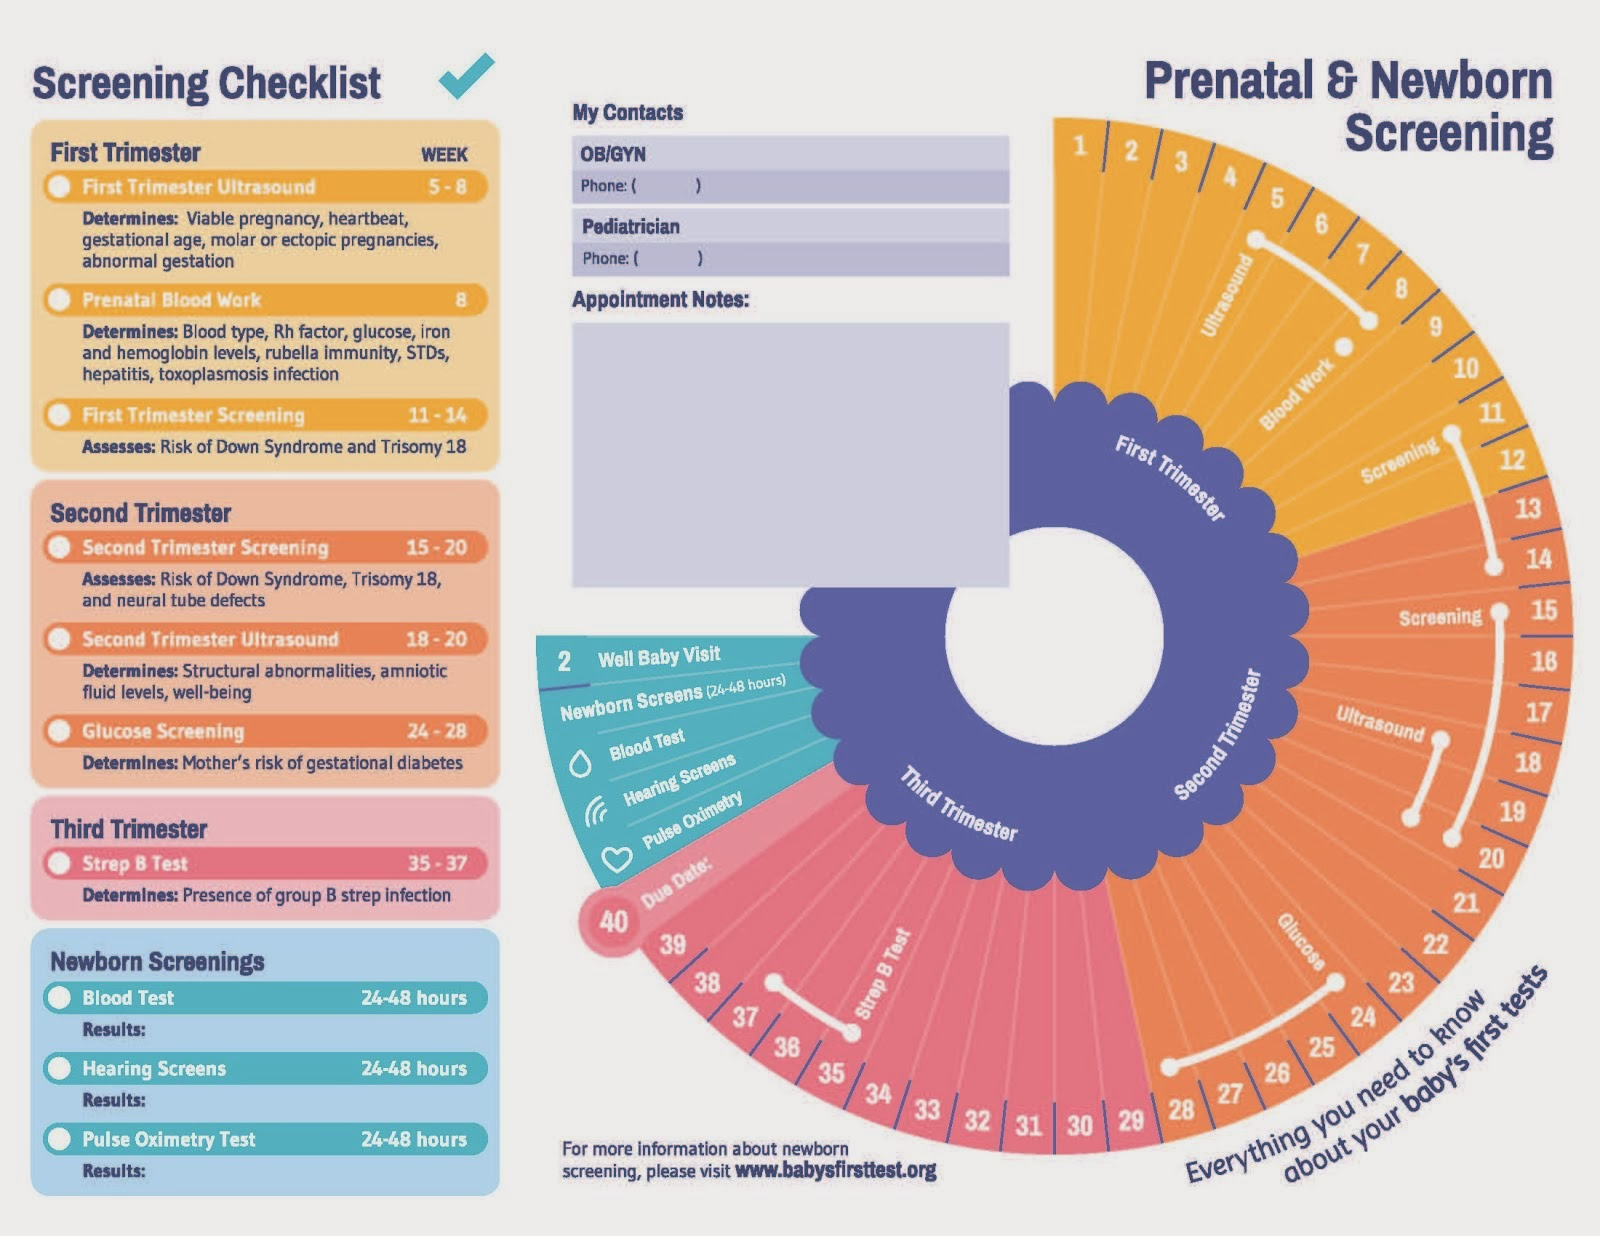 Prenatal and Newborn Screening Timeline